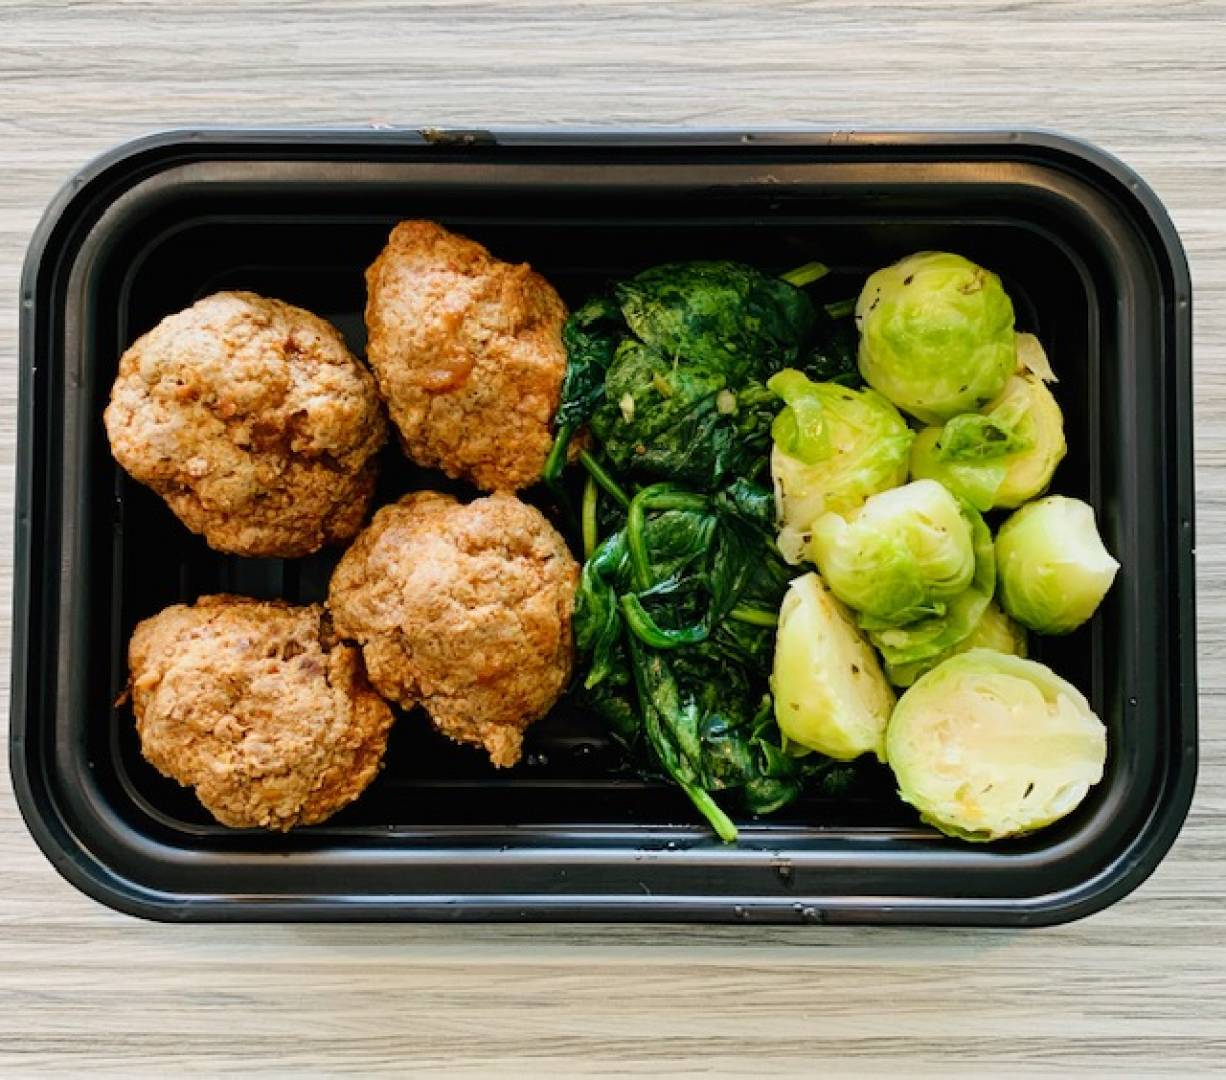 Beef Meatballs, Spinach and Brussel Sprouts